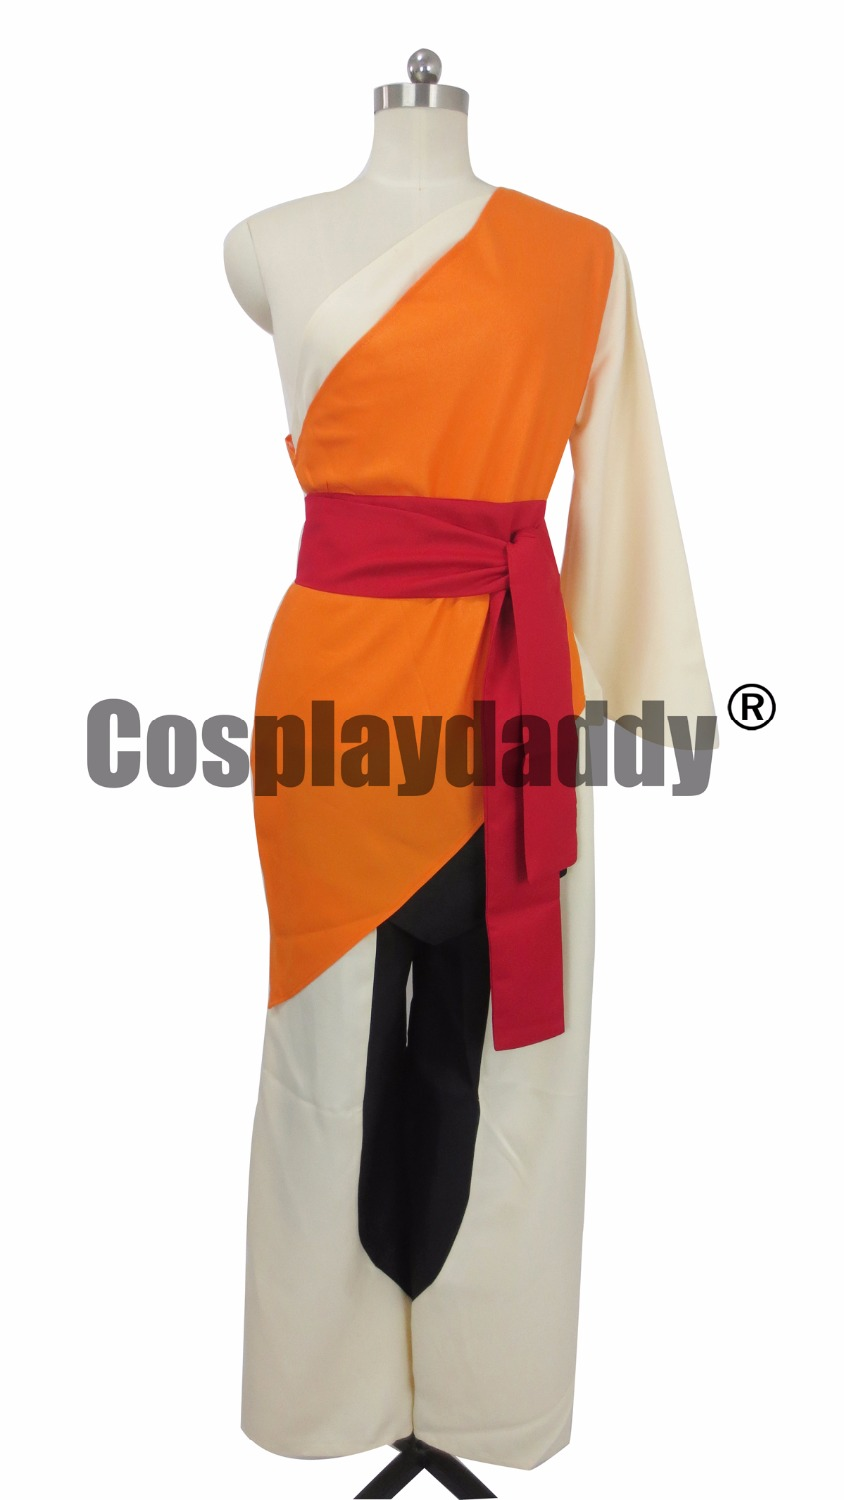 Avatar The Last Airbender Aang Outfit Cosplay Costume C018